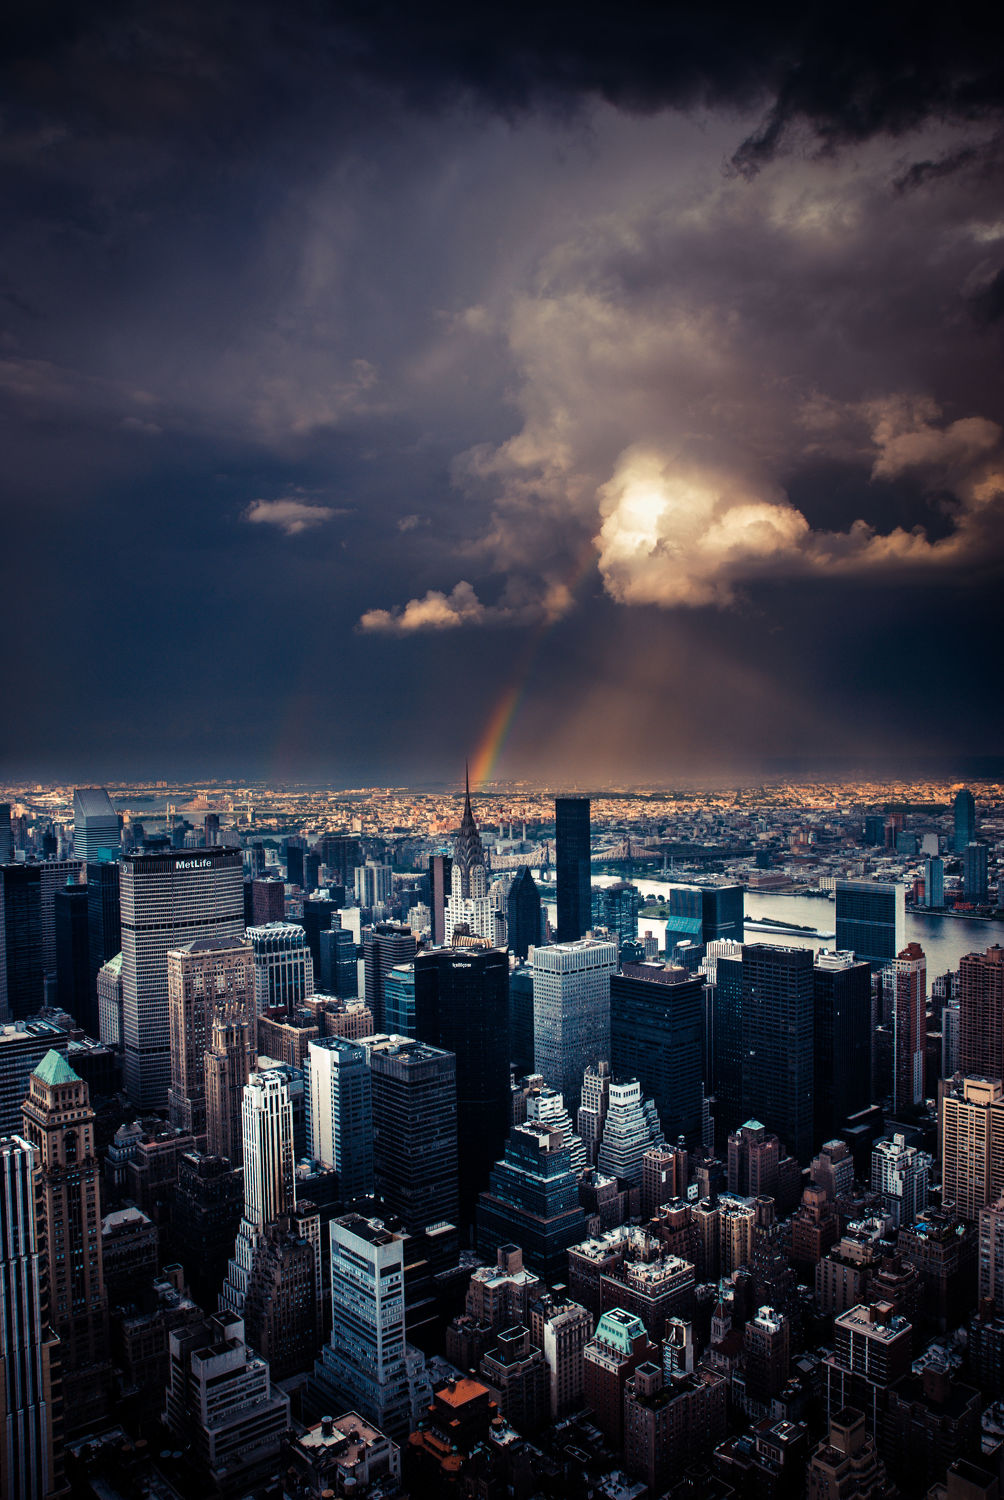 Bild mit Autos, Architektur, Straßen, Panorama, Stadt, clouds, Nature, urban, New York, monochrom, City, Staedte und Architektur, USA, VINTAGE, hochhaus, wolkenkratzer, metropole, Straße, island, Hochhäuser, rainbow, street, Manhattan, Brooklyn Bridge, Yellow cab, taxi, Taxis, New York City, NYC, NYC, Gelbe Taxis, yellow cabs, Manhatten, high tower, big apple, empire state building, one world trade center, skyscraper, skyscraper, birds view, high towers, rain, rainy, storm, thunder